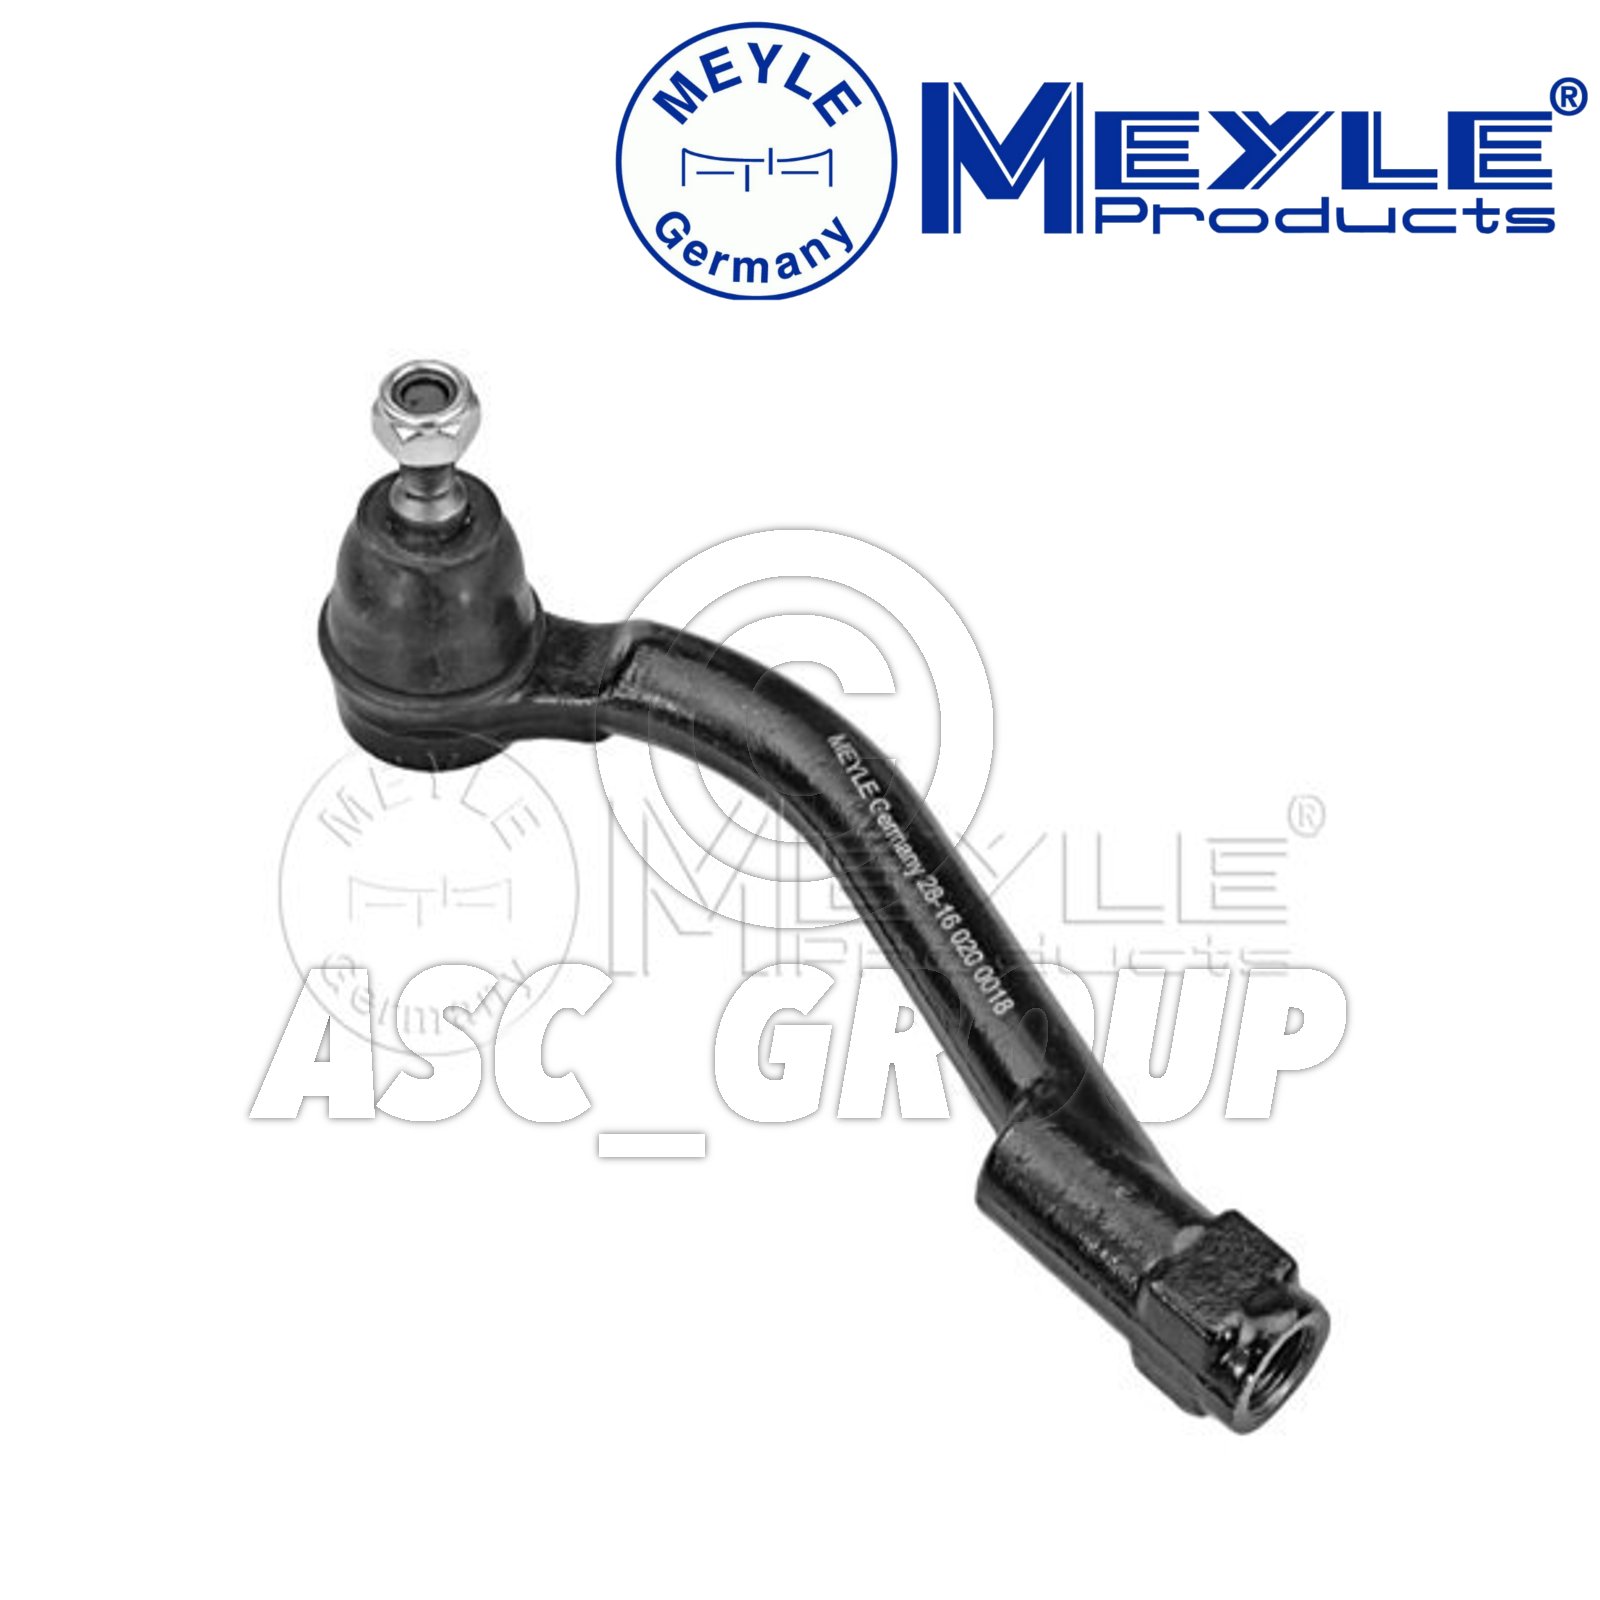 TRE 37-16 020 0018 Meyle Germany Tie // Track Rod End Front Axle Left Part No